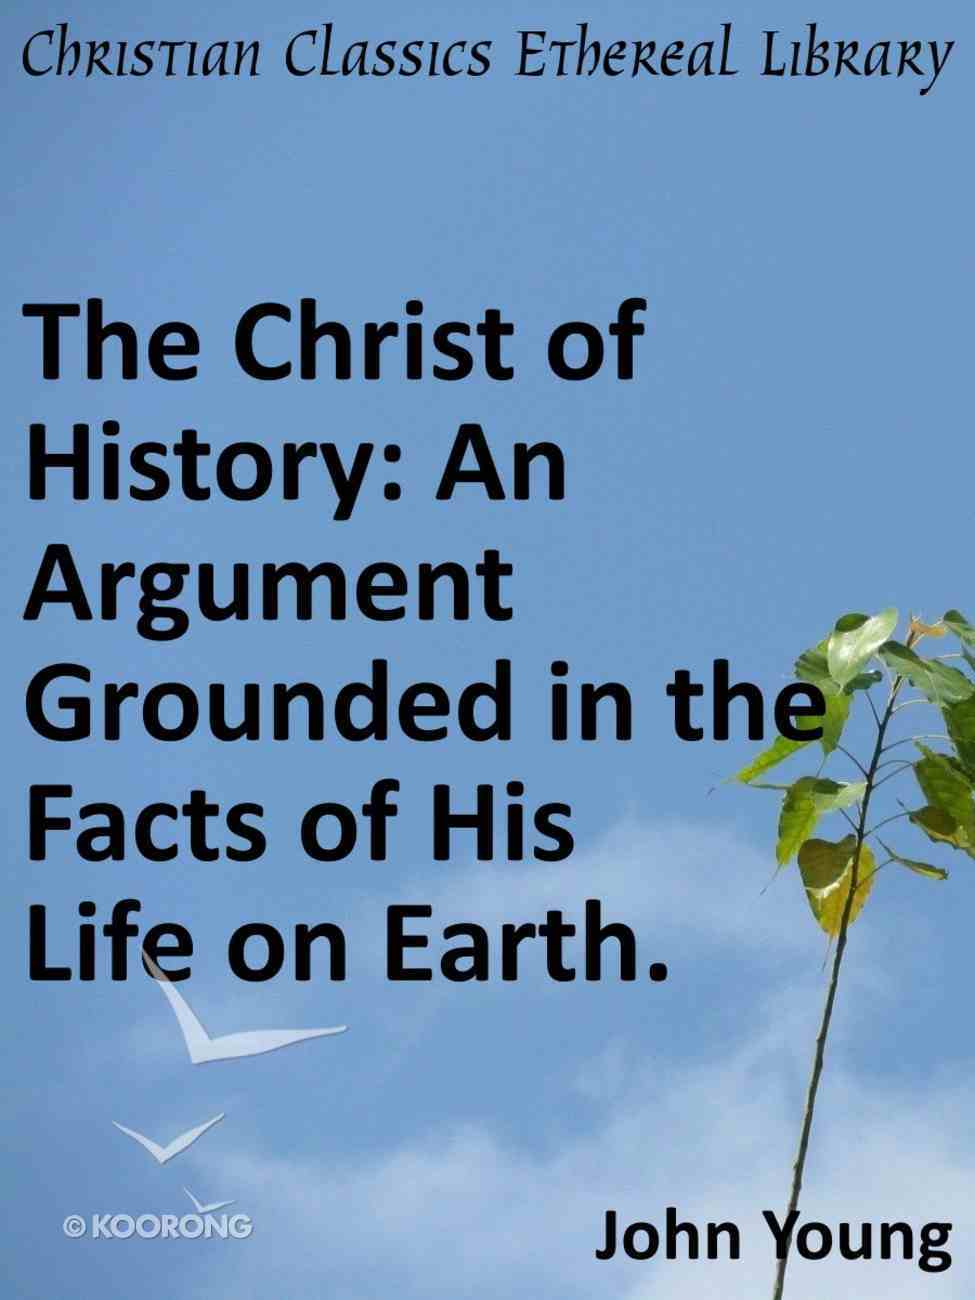 Christ of History: An Argument Grounded in the Facts of His Life on Earth. eBook